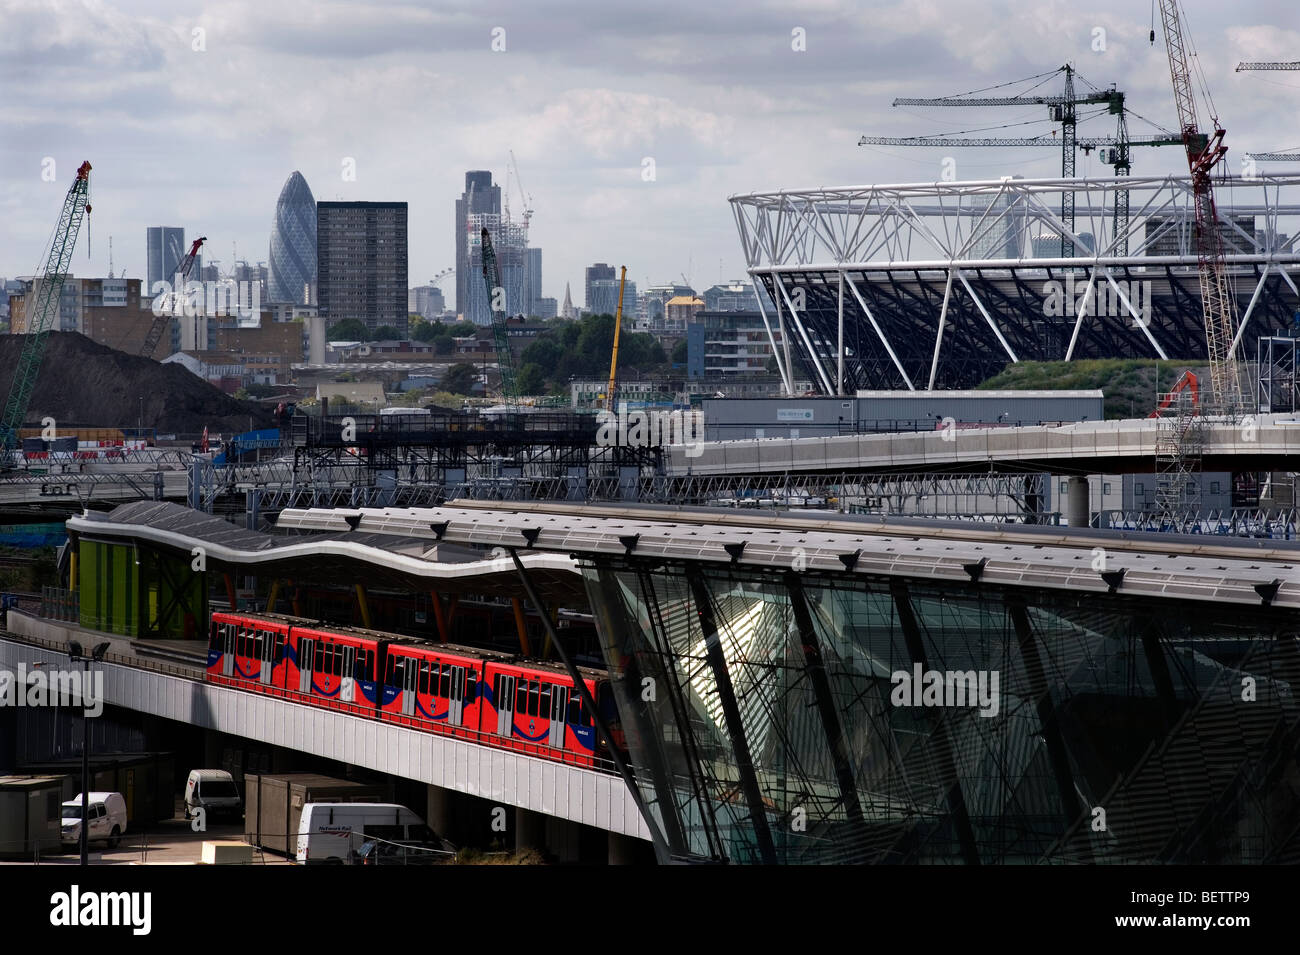 London Britain Sebastian Coe Olympic site 2012 ODA sport build construction stadium - Stock Image